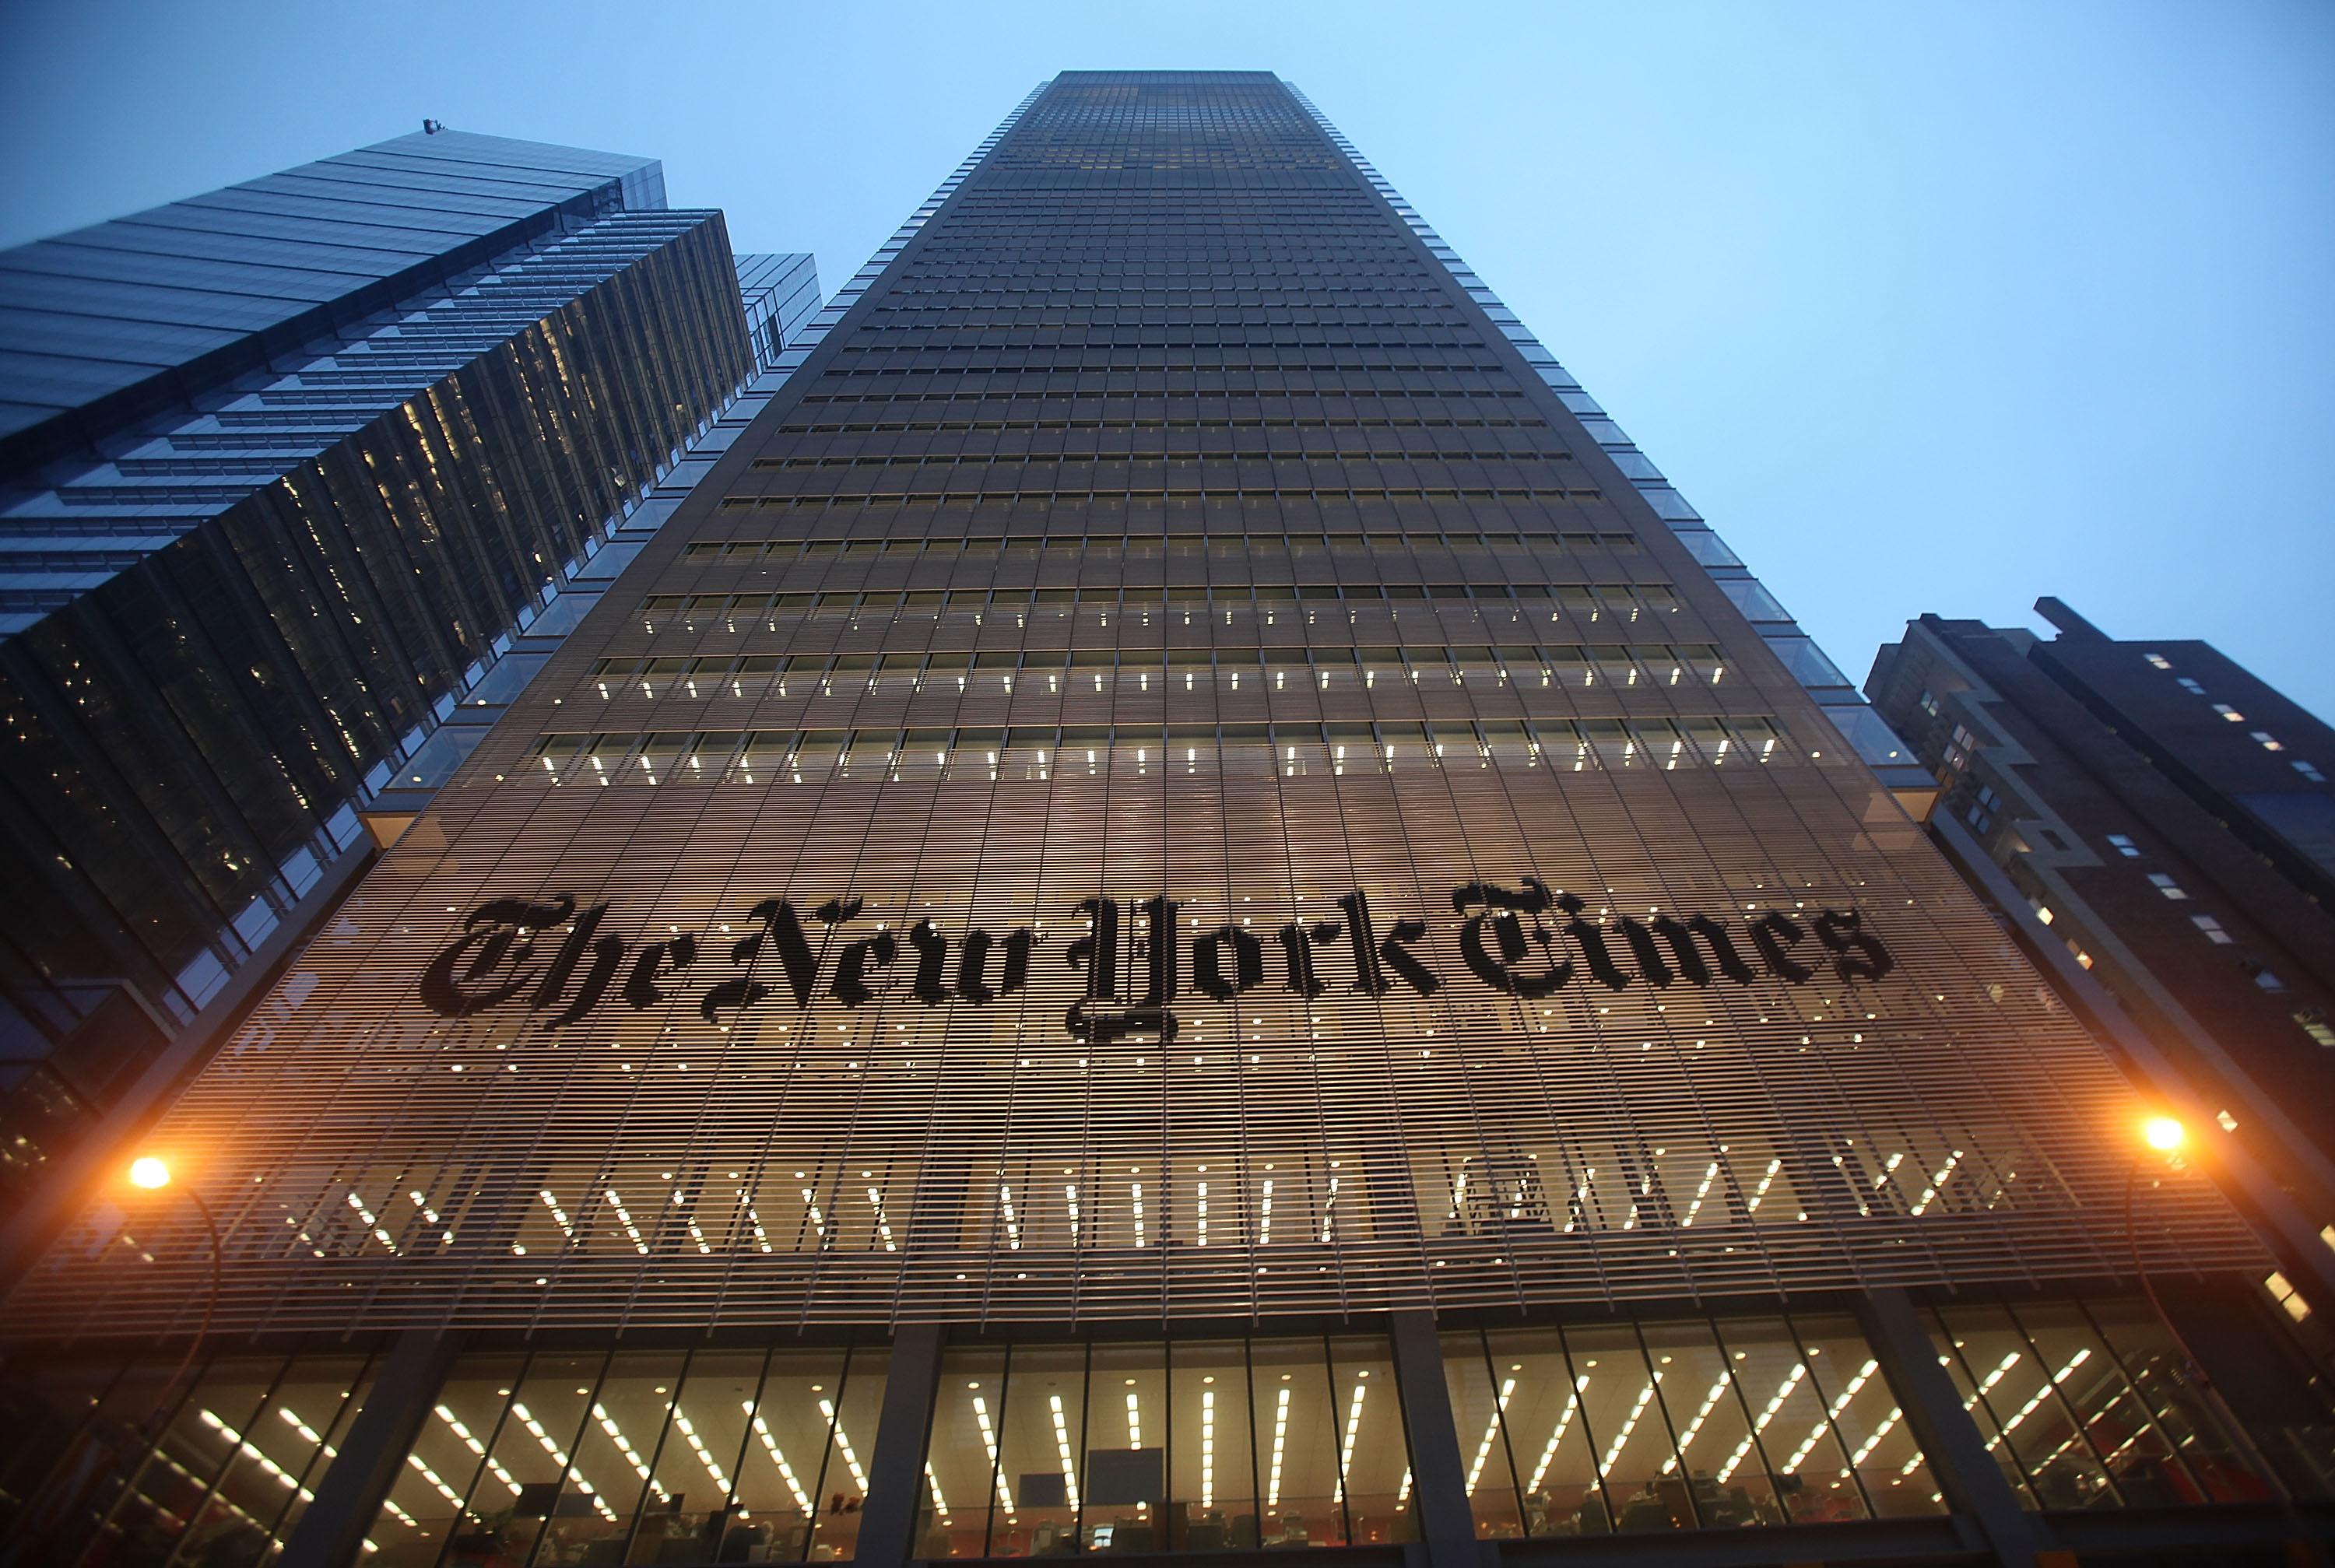 The New York Times goes dark in China after exposé on premier's family's fortune